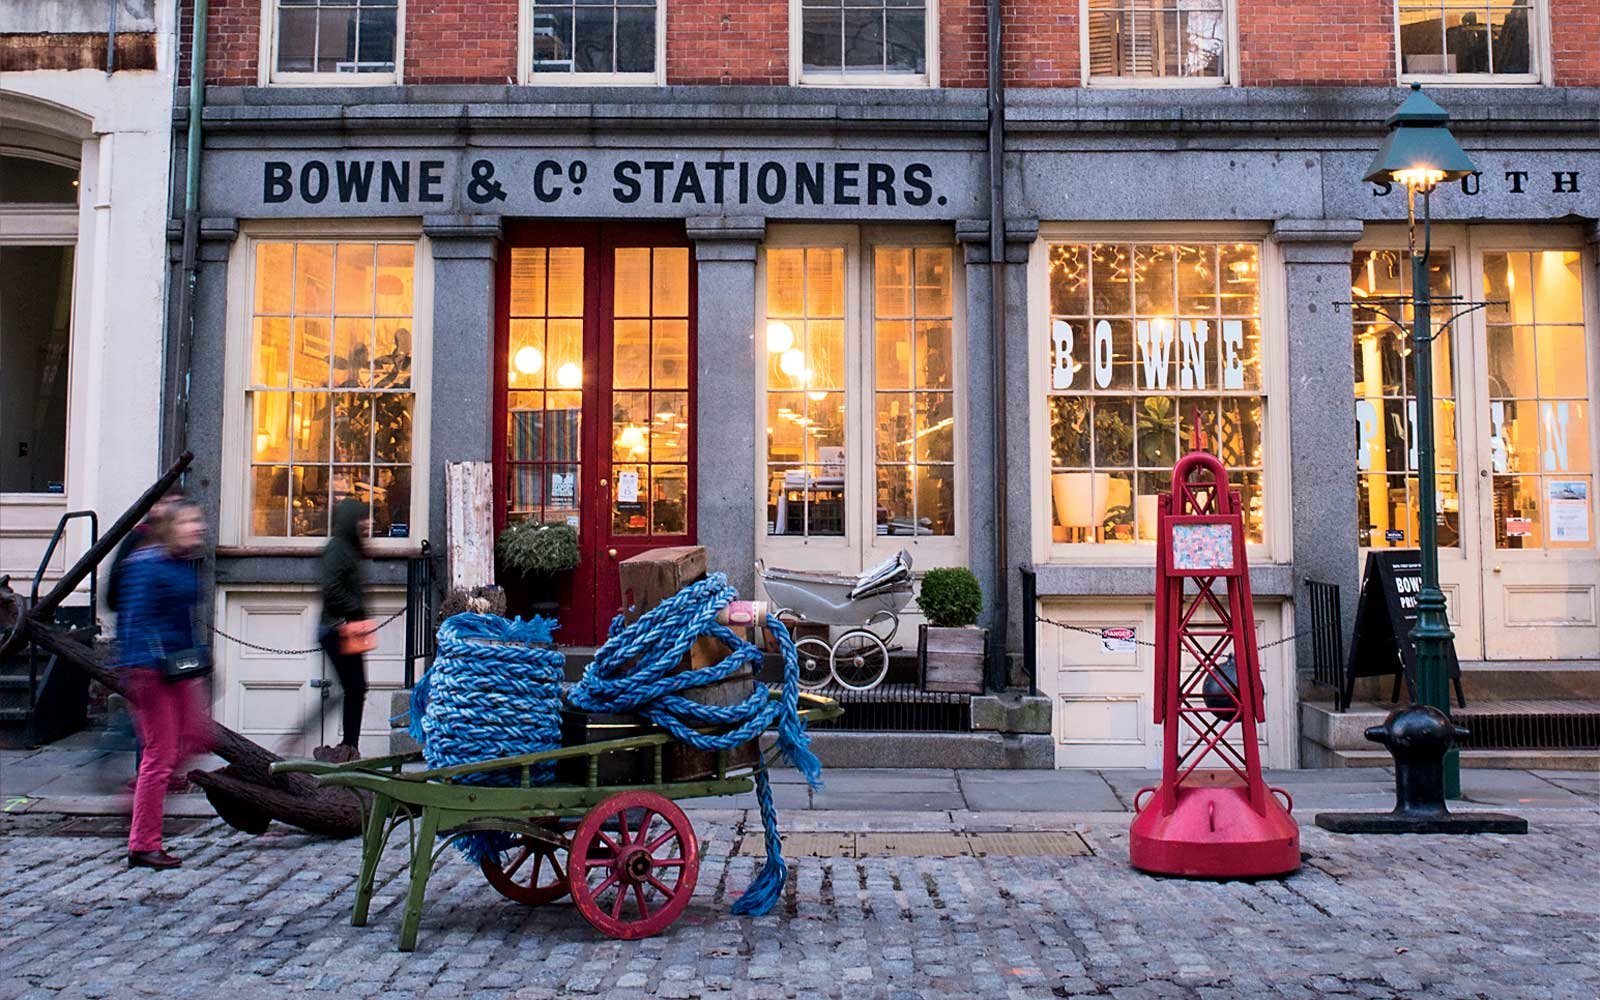 Bowen & Co. Stationers, at New York's South Street Seaport